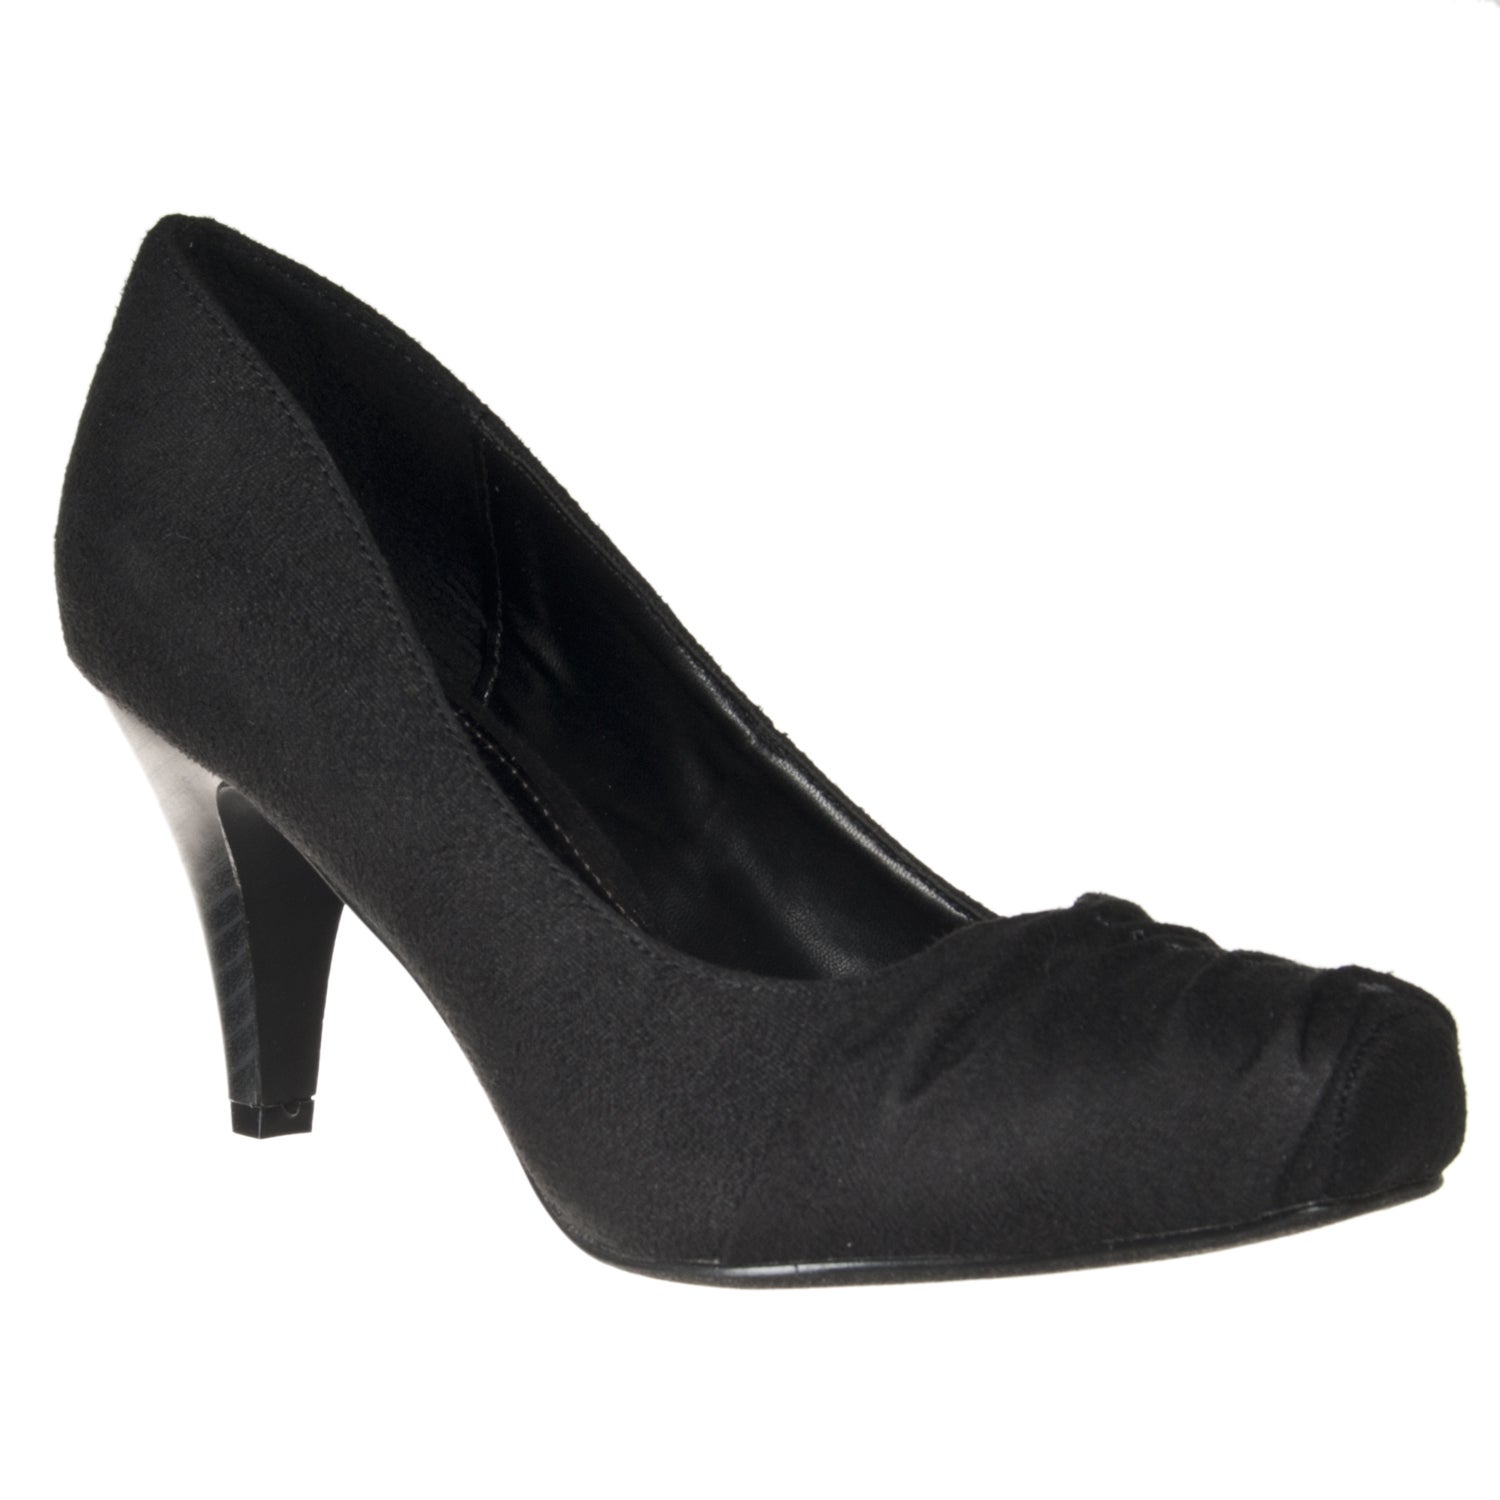 Riverberry Women's 'Array' Black Ruched Toe Pumps